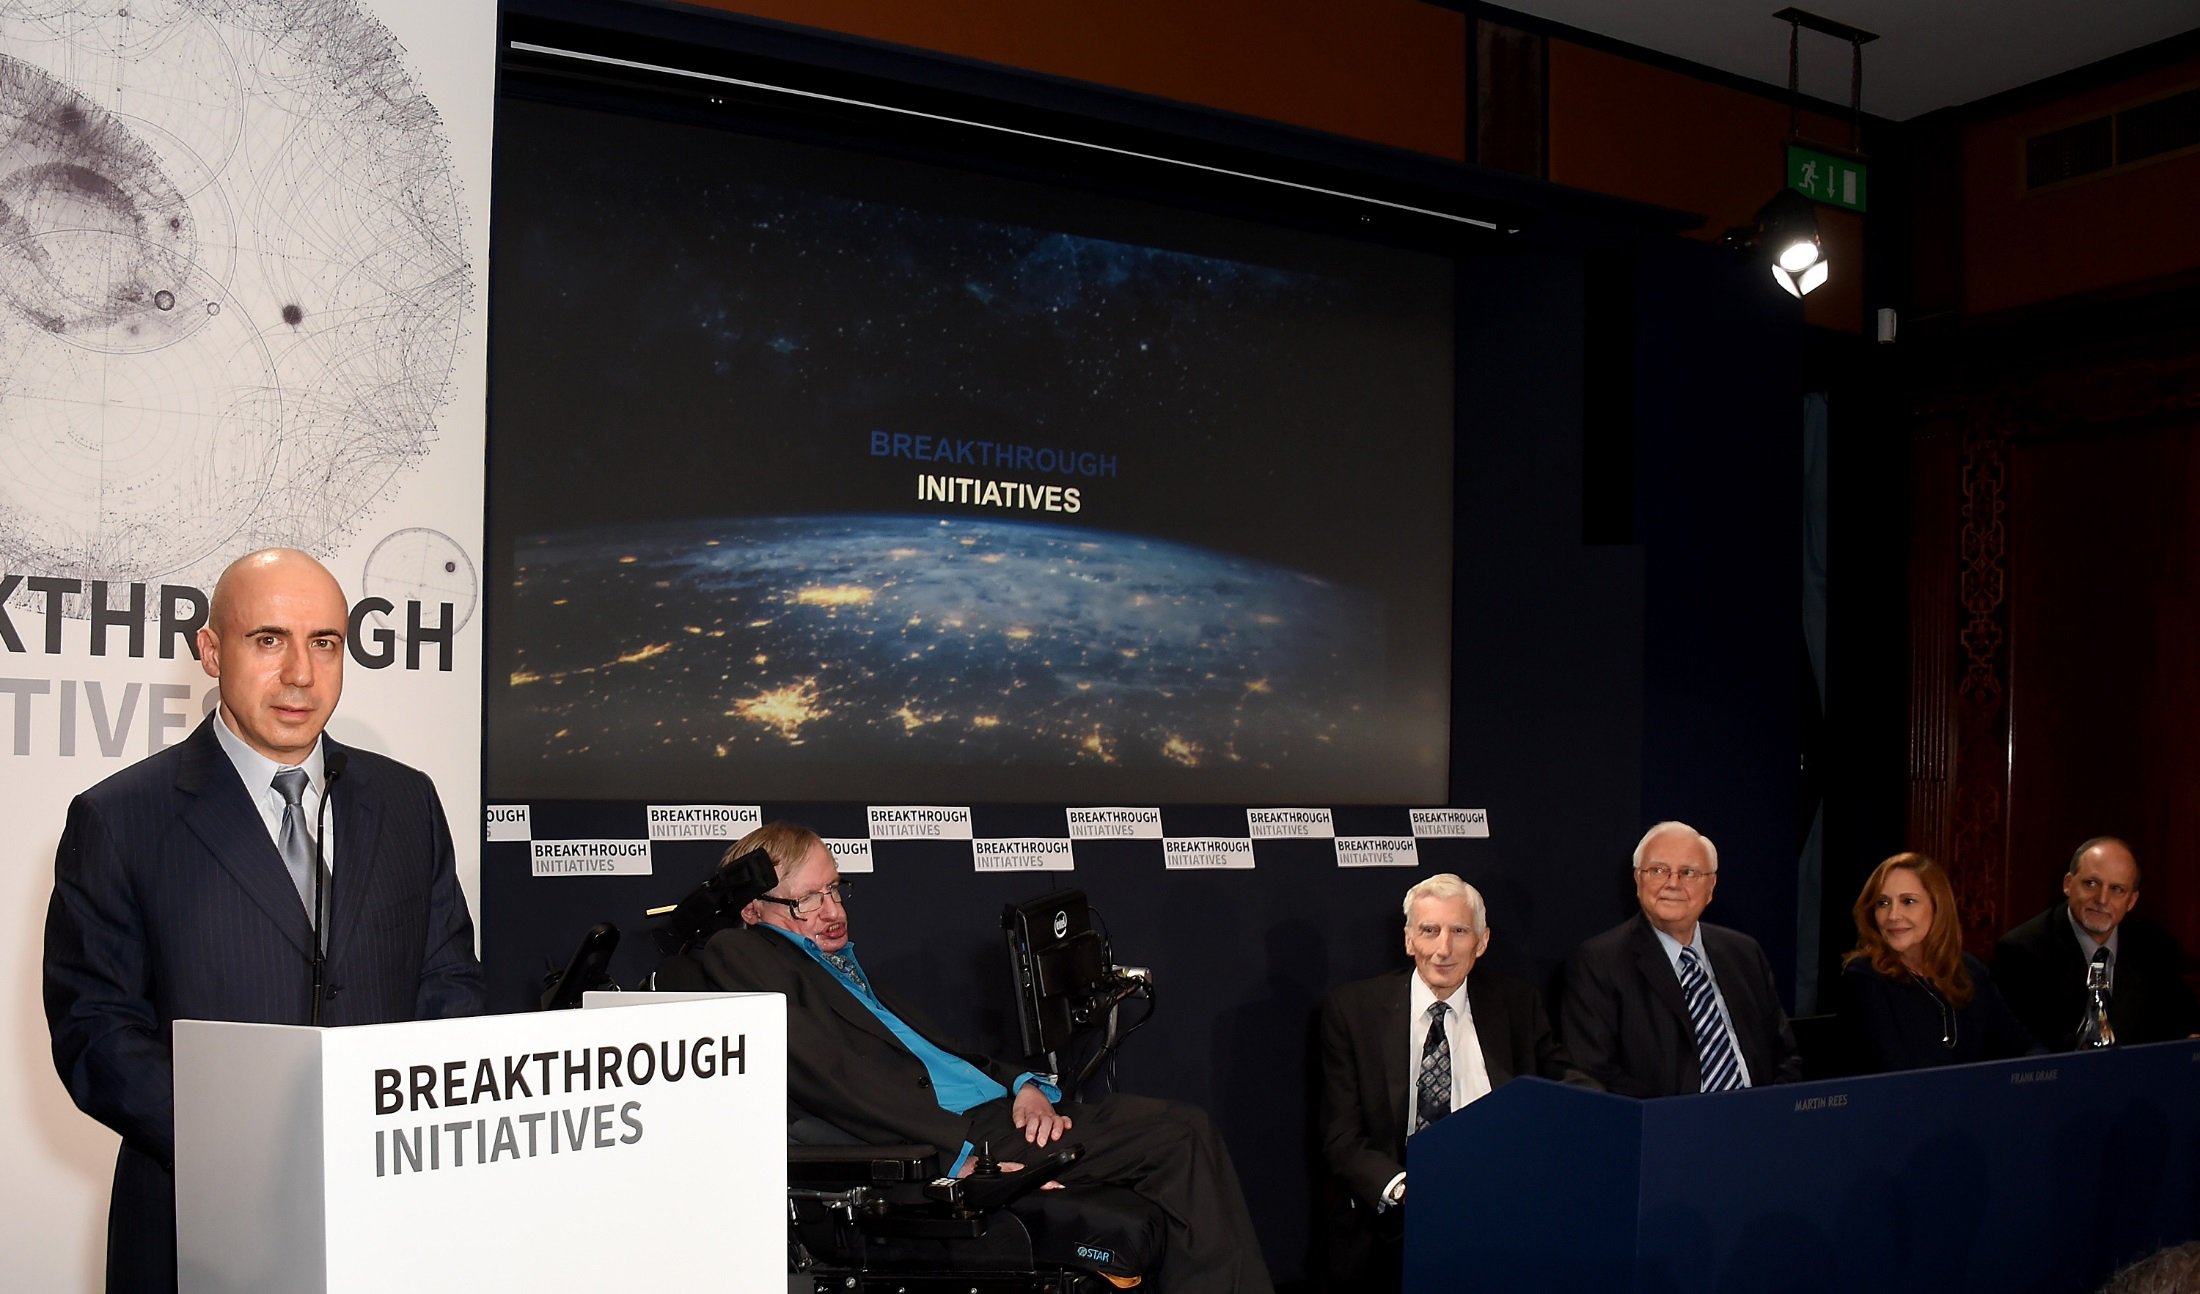 stephen-hawking-alien-life-breakthrough-initiatives